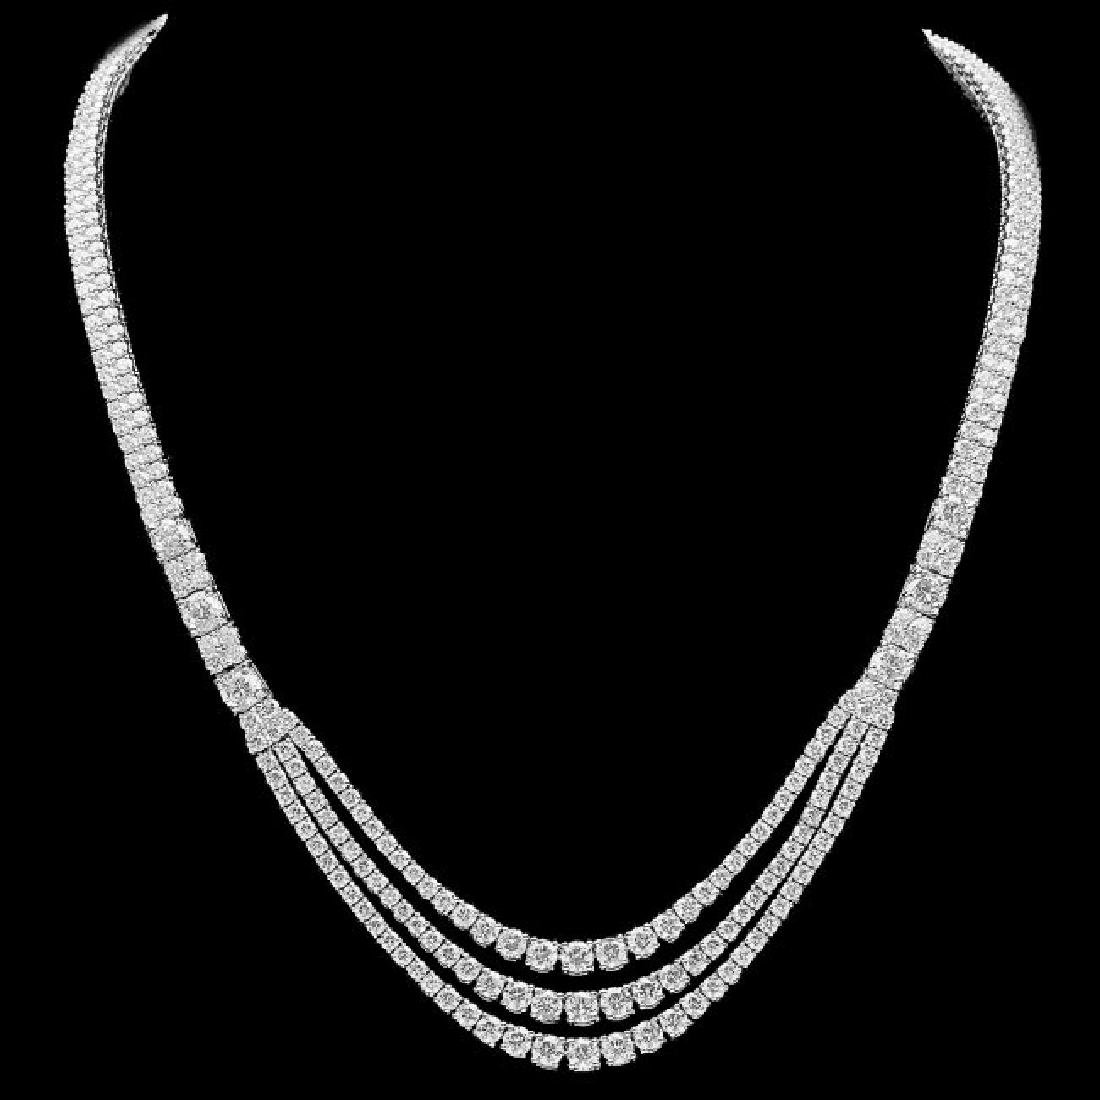 18k White Gold 23.10ct Diamond Necklace